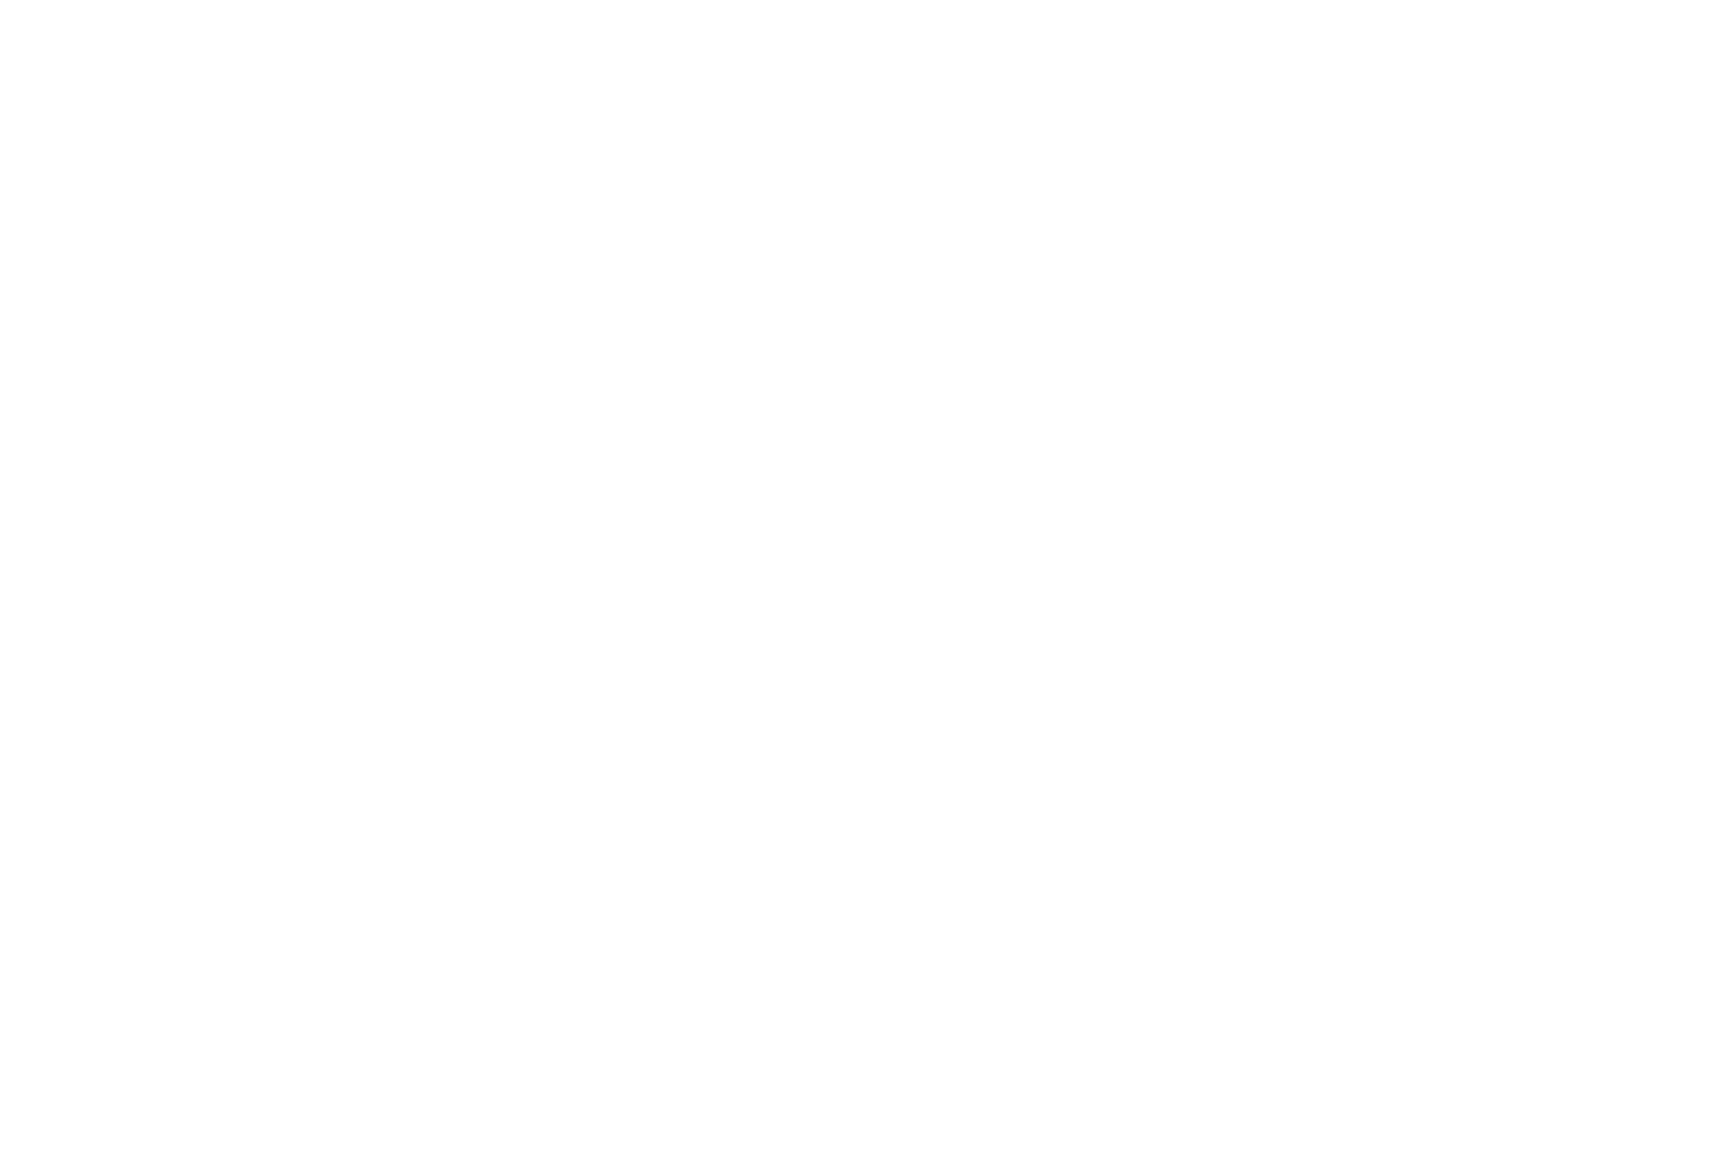 SEMI-FINALIST - Bare Bones Intl Film Festival Screenplay Competition